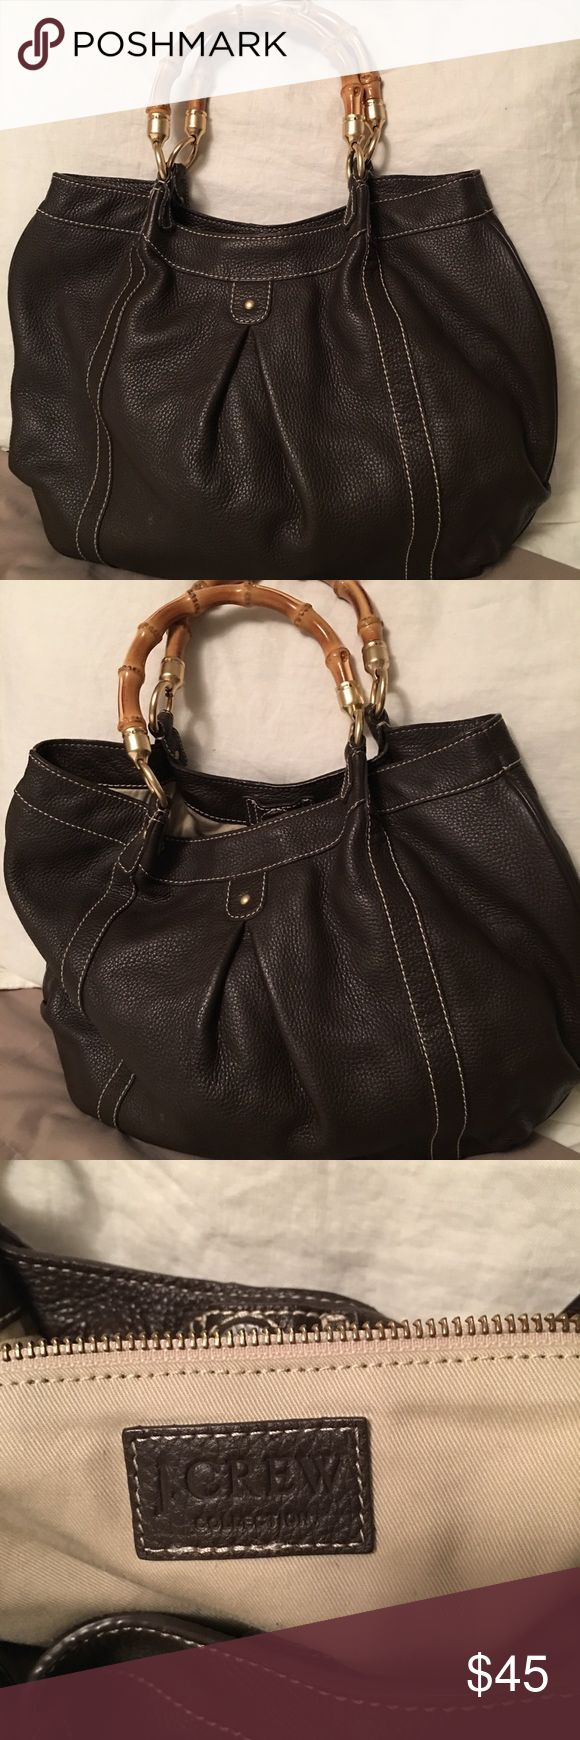 J Crew Handbag Very pretty J Crew Handbag in a dark brown pebble leather with very pretty bamboo handles. Very soft leather J. Crew Bags Satchels